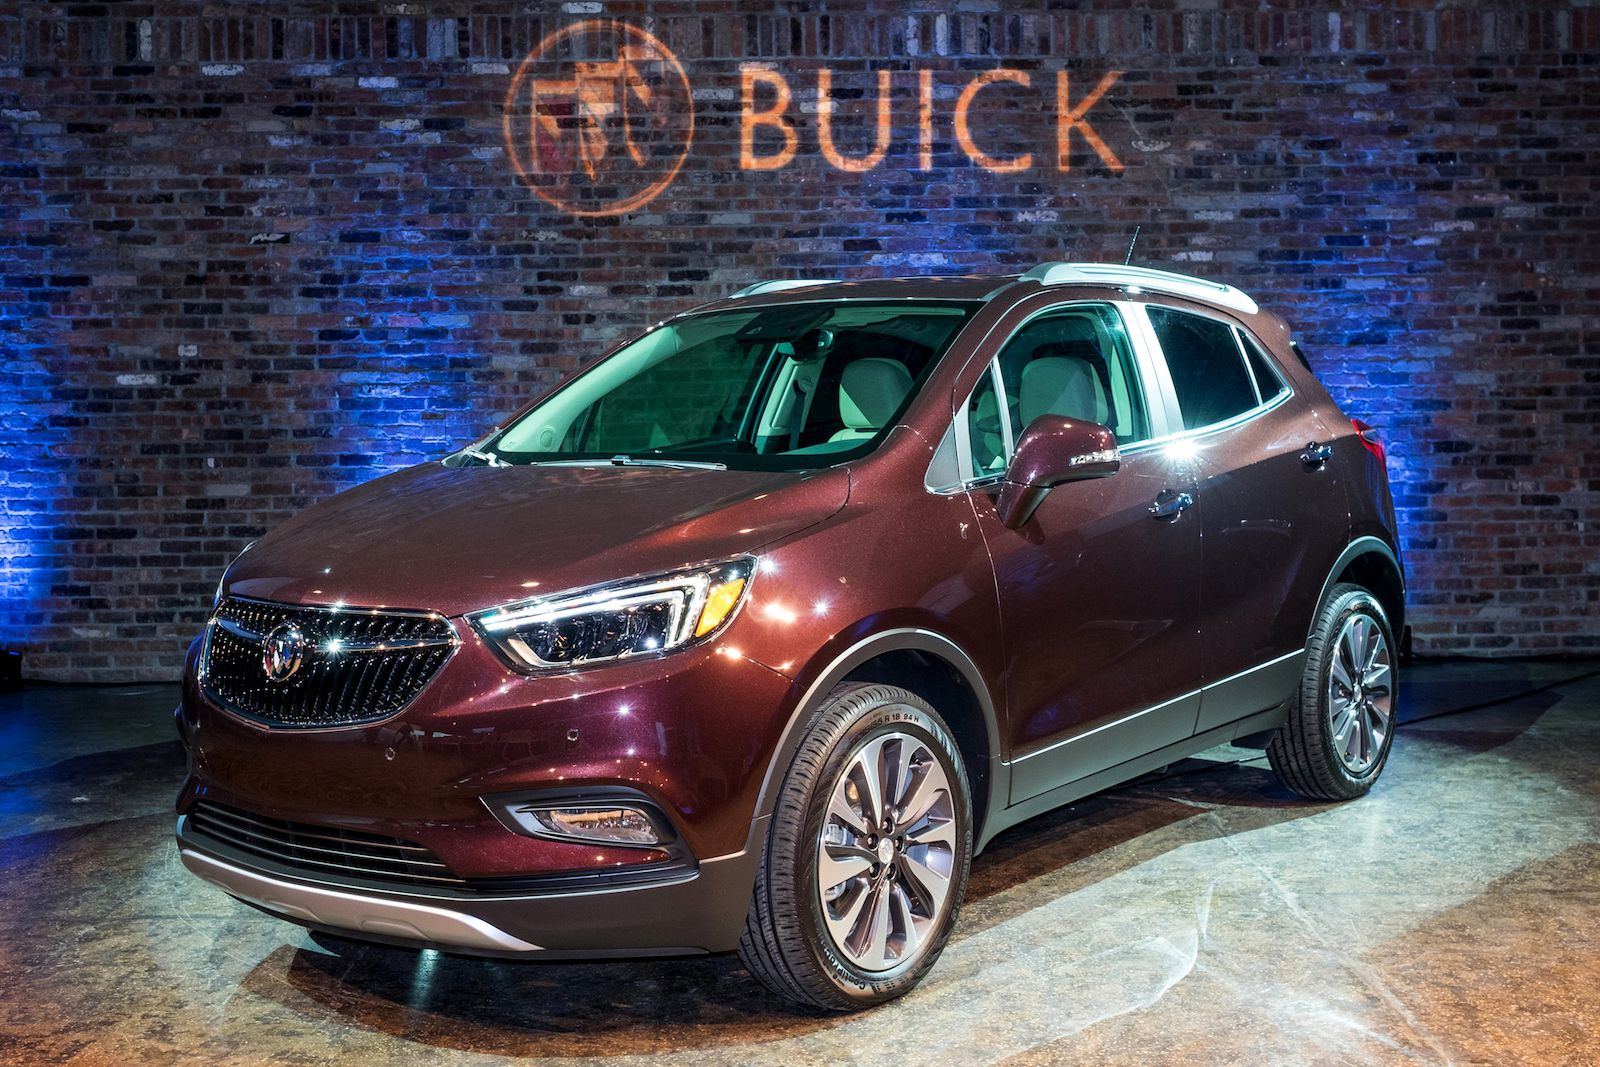 2017 Buick Encore The Car Connection Buick Encore Buick New Engine